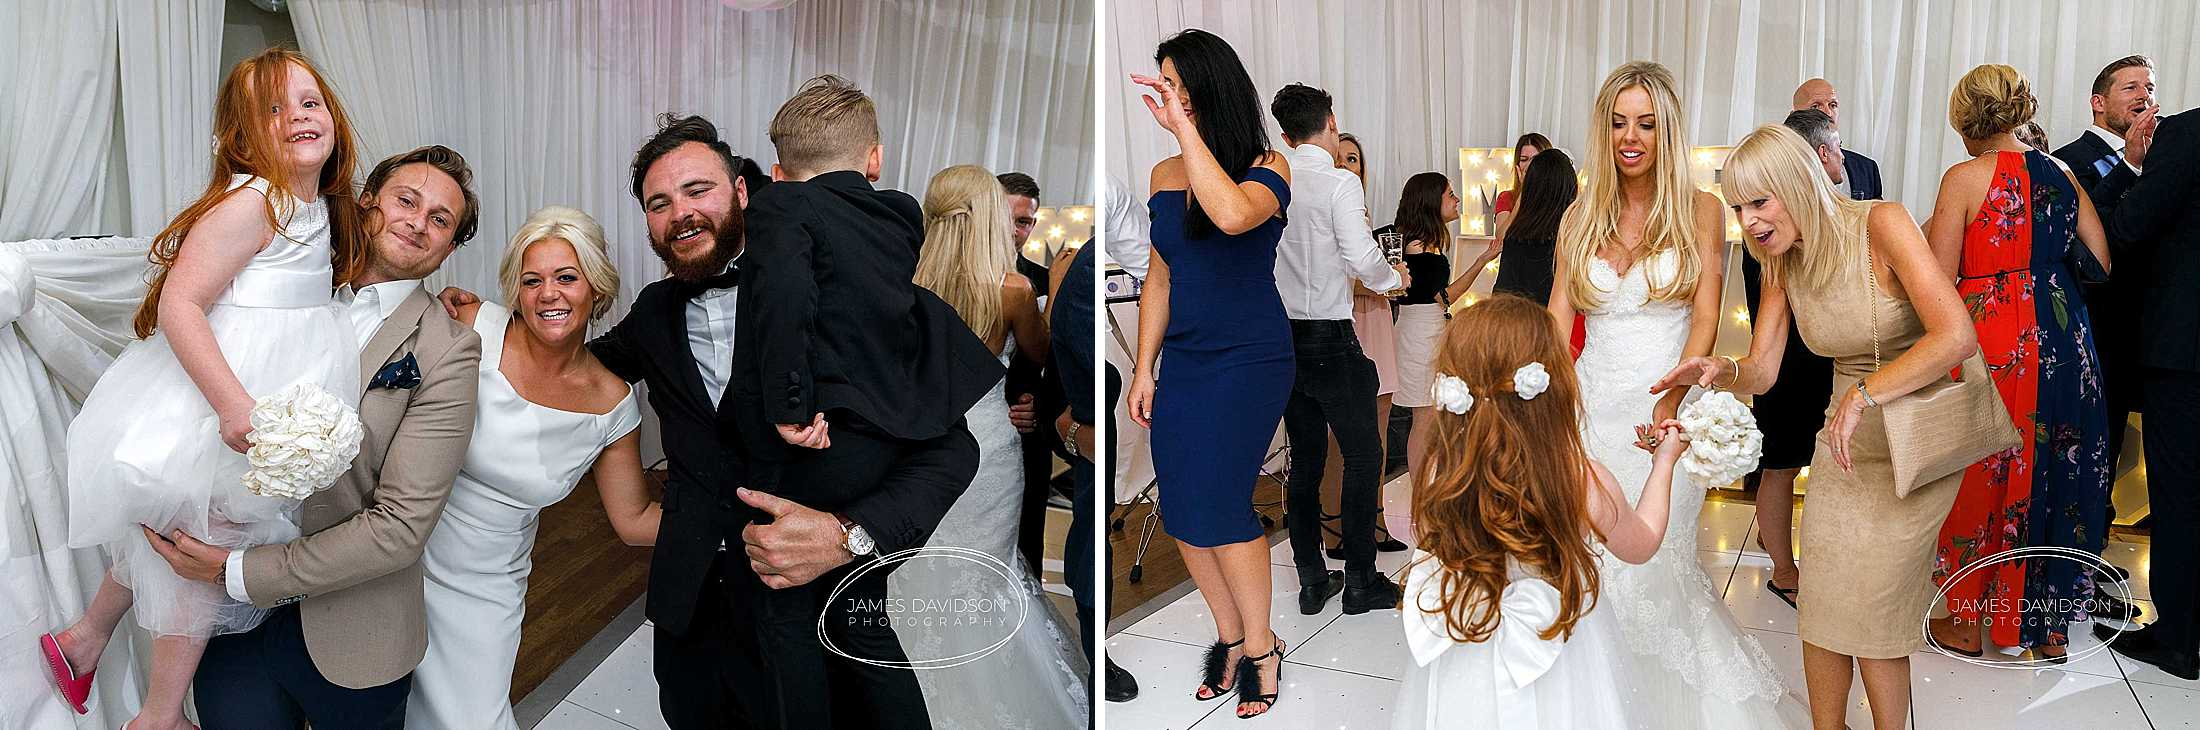 gosfield-hall-wedding-photography-160